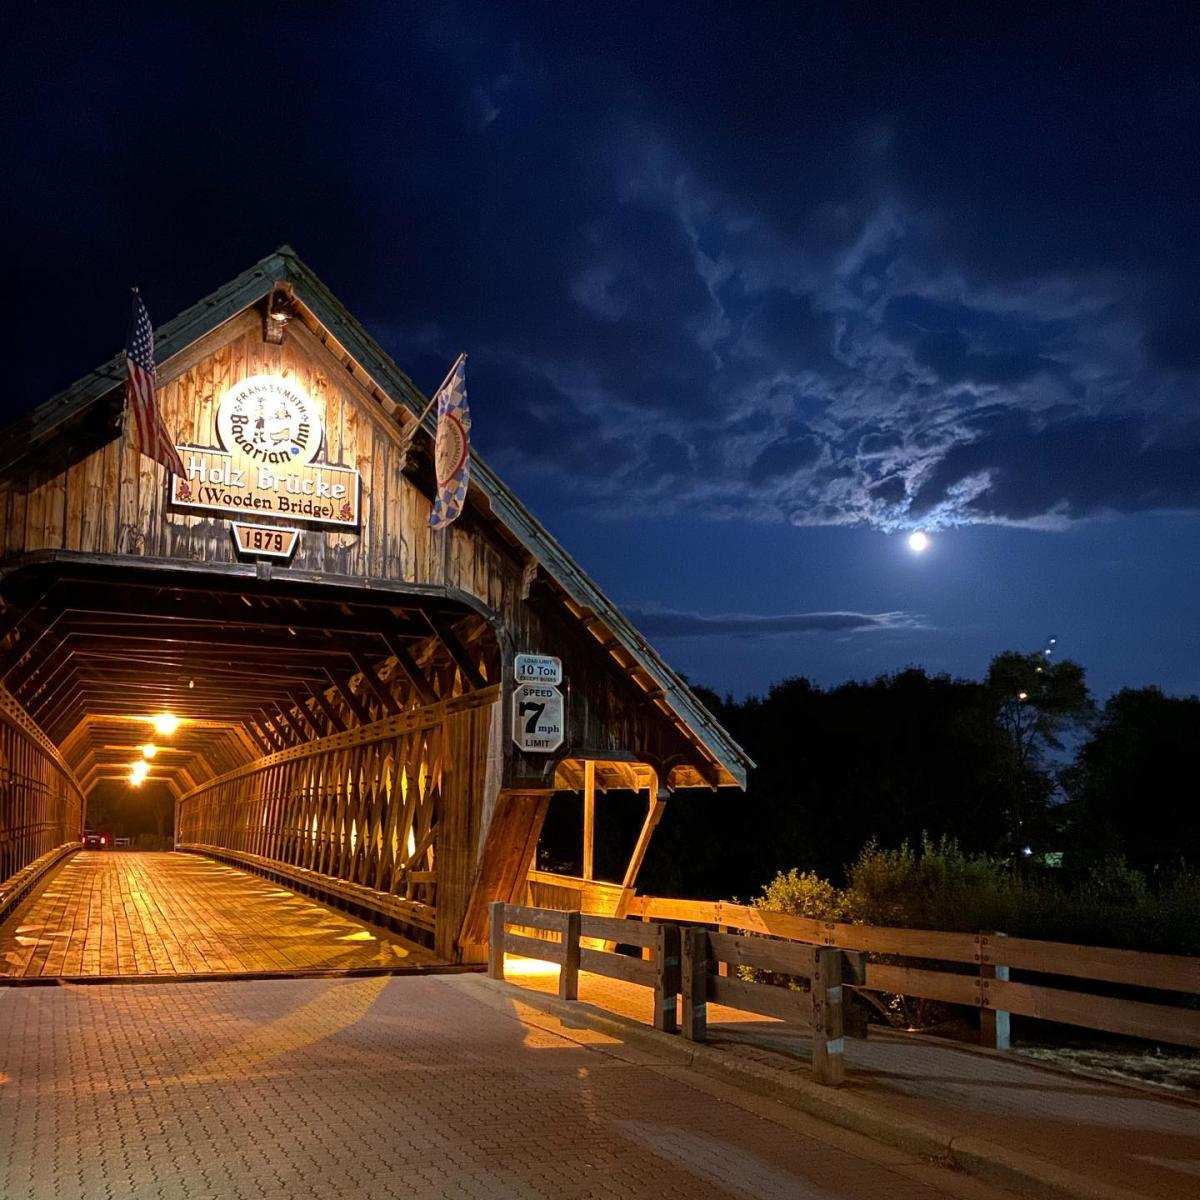 Frankenmuth Holz Brucke Wooden Covered Bridge illuminated against a dark night sky